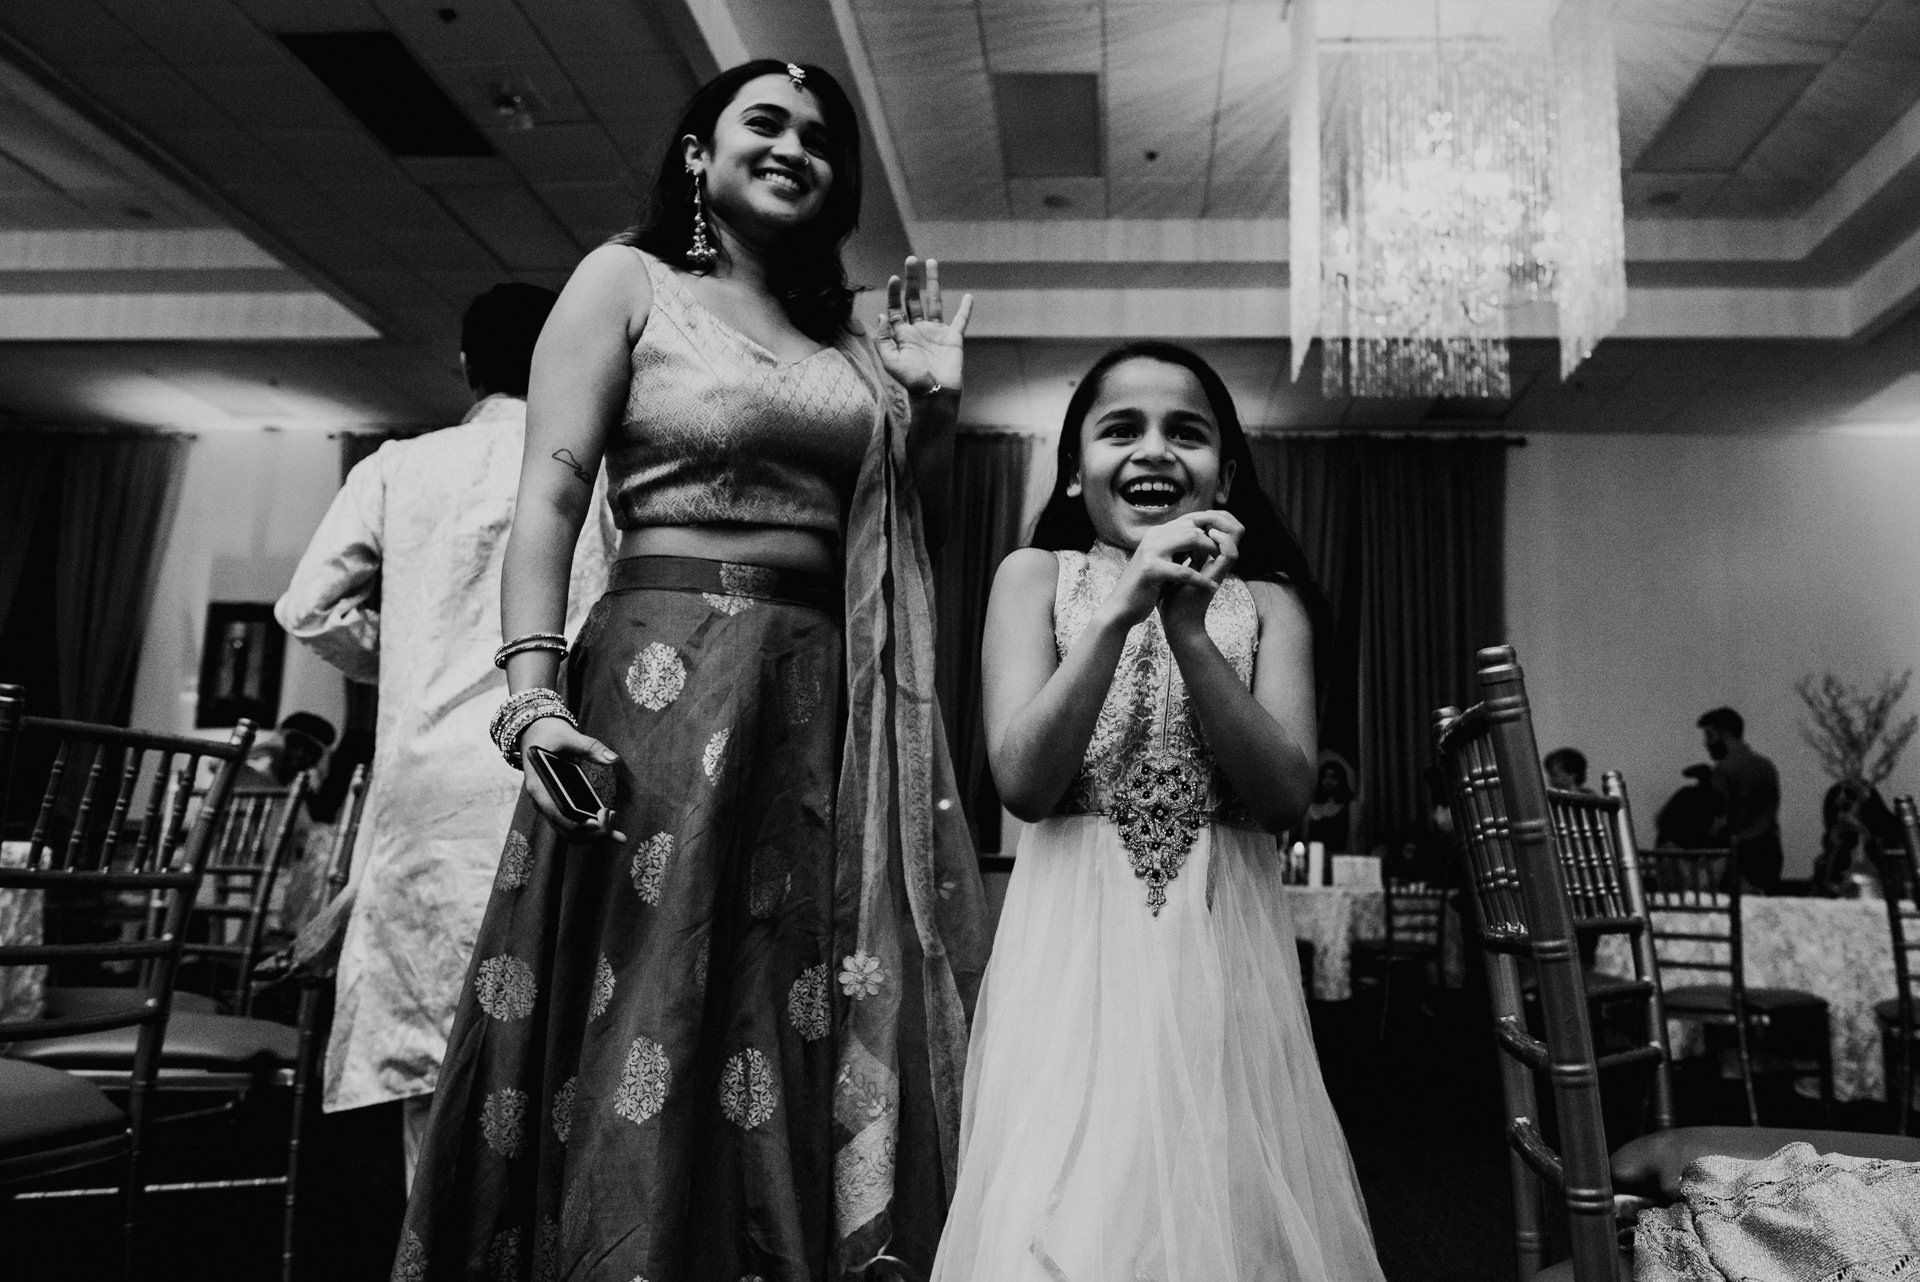 Multicultural wedding photographer